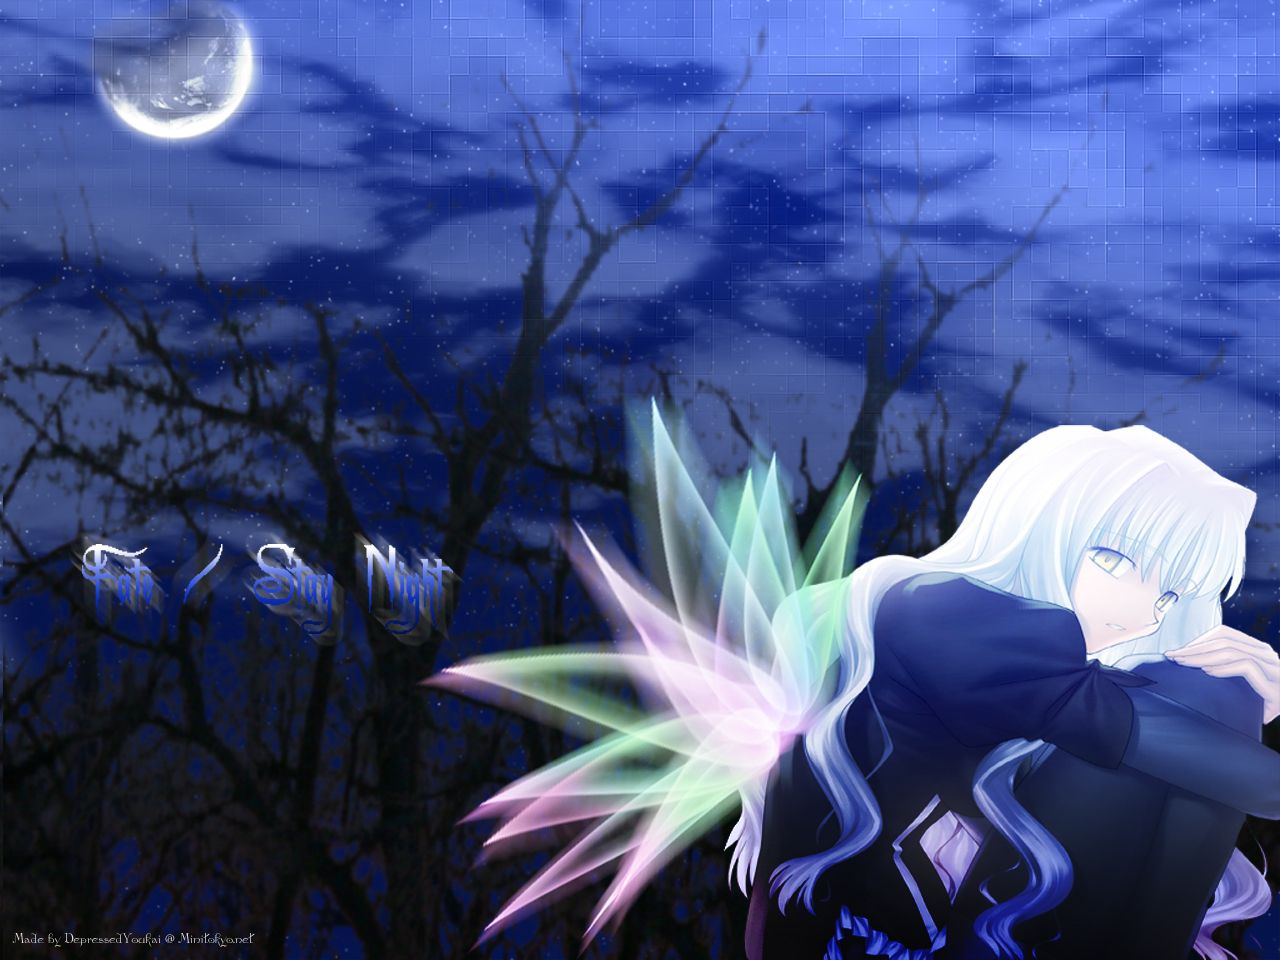 Minitokyo_Fate-Stay_Night_Wallpapers_228535.jpg